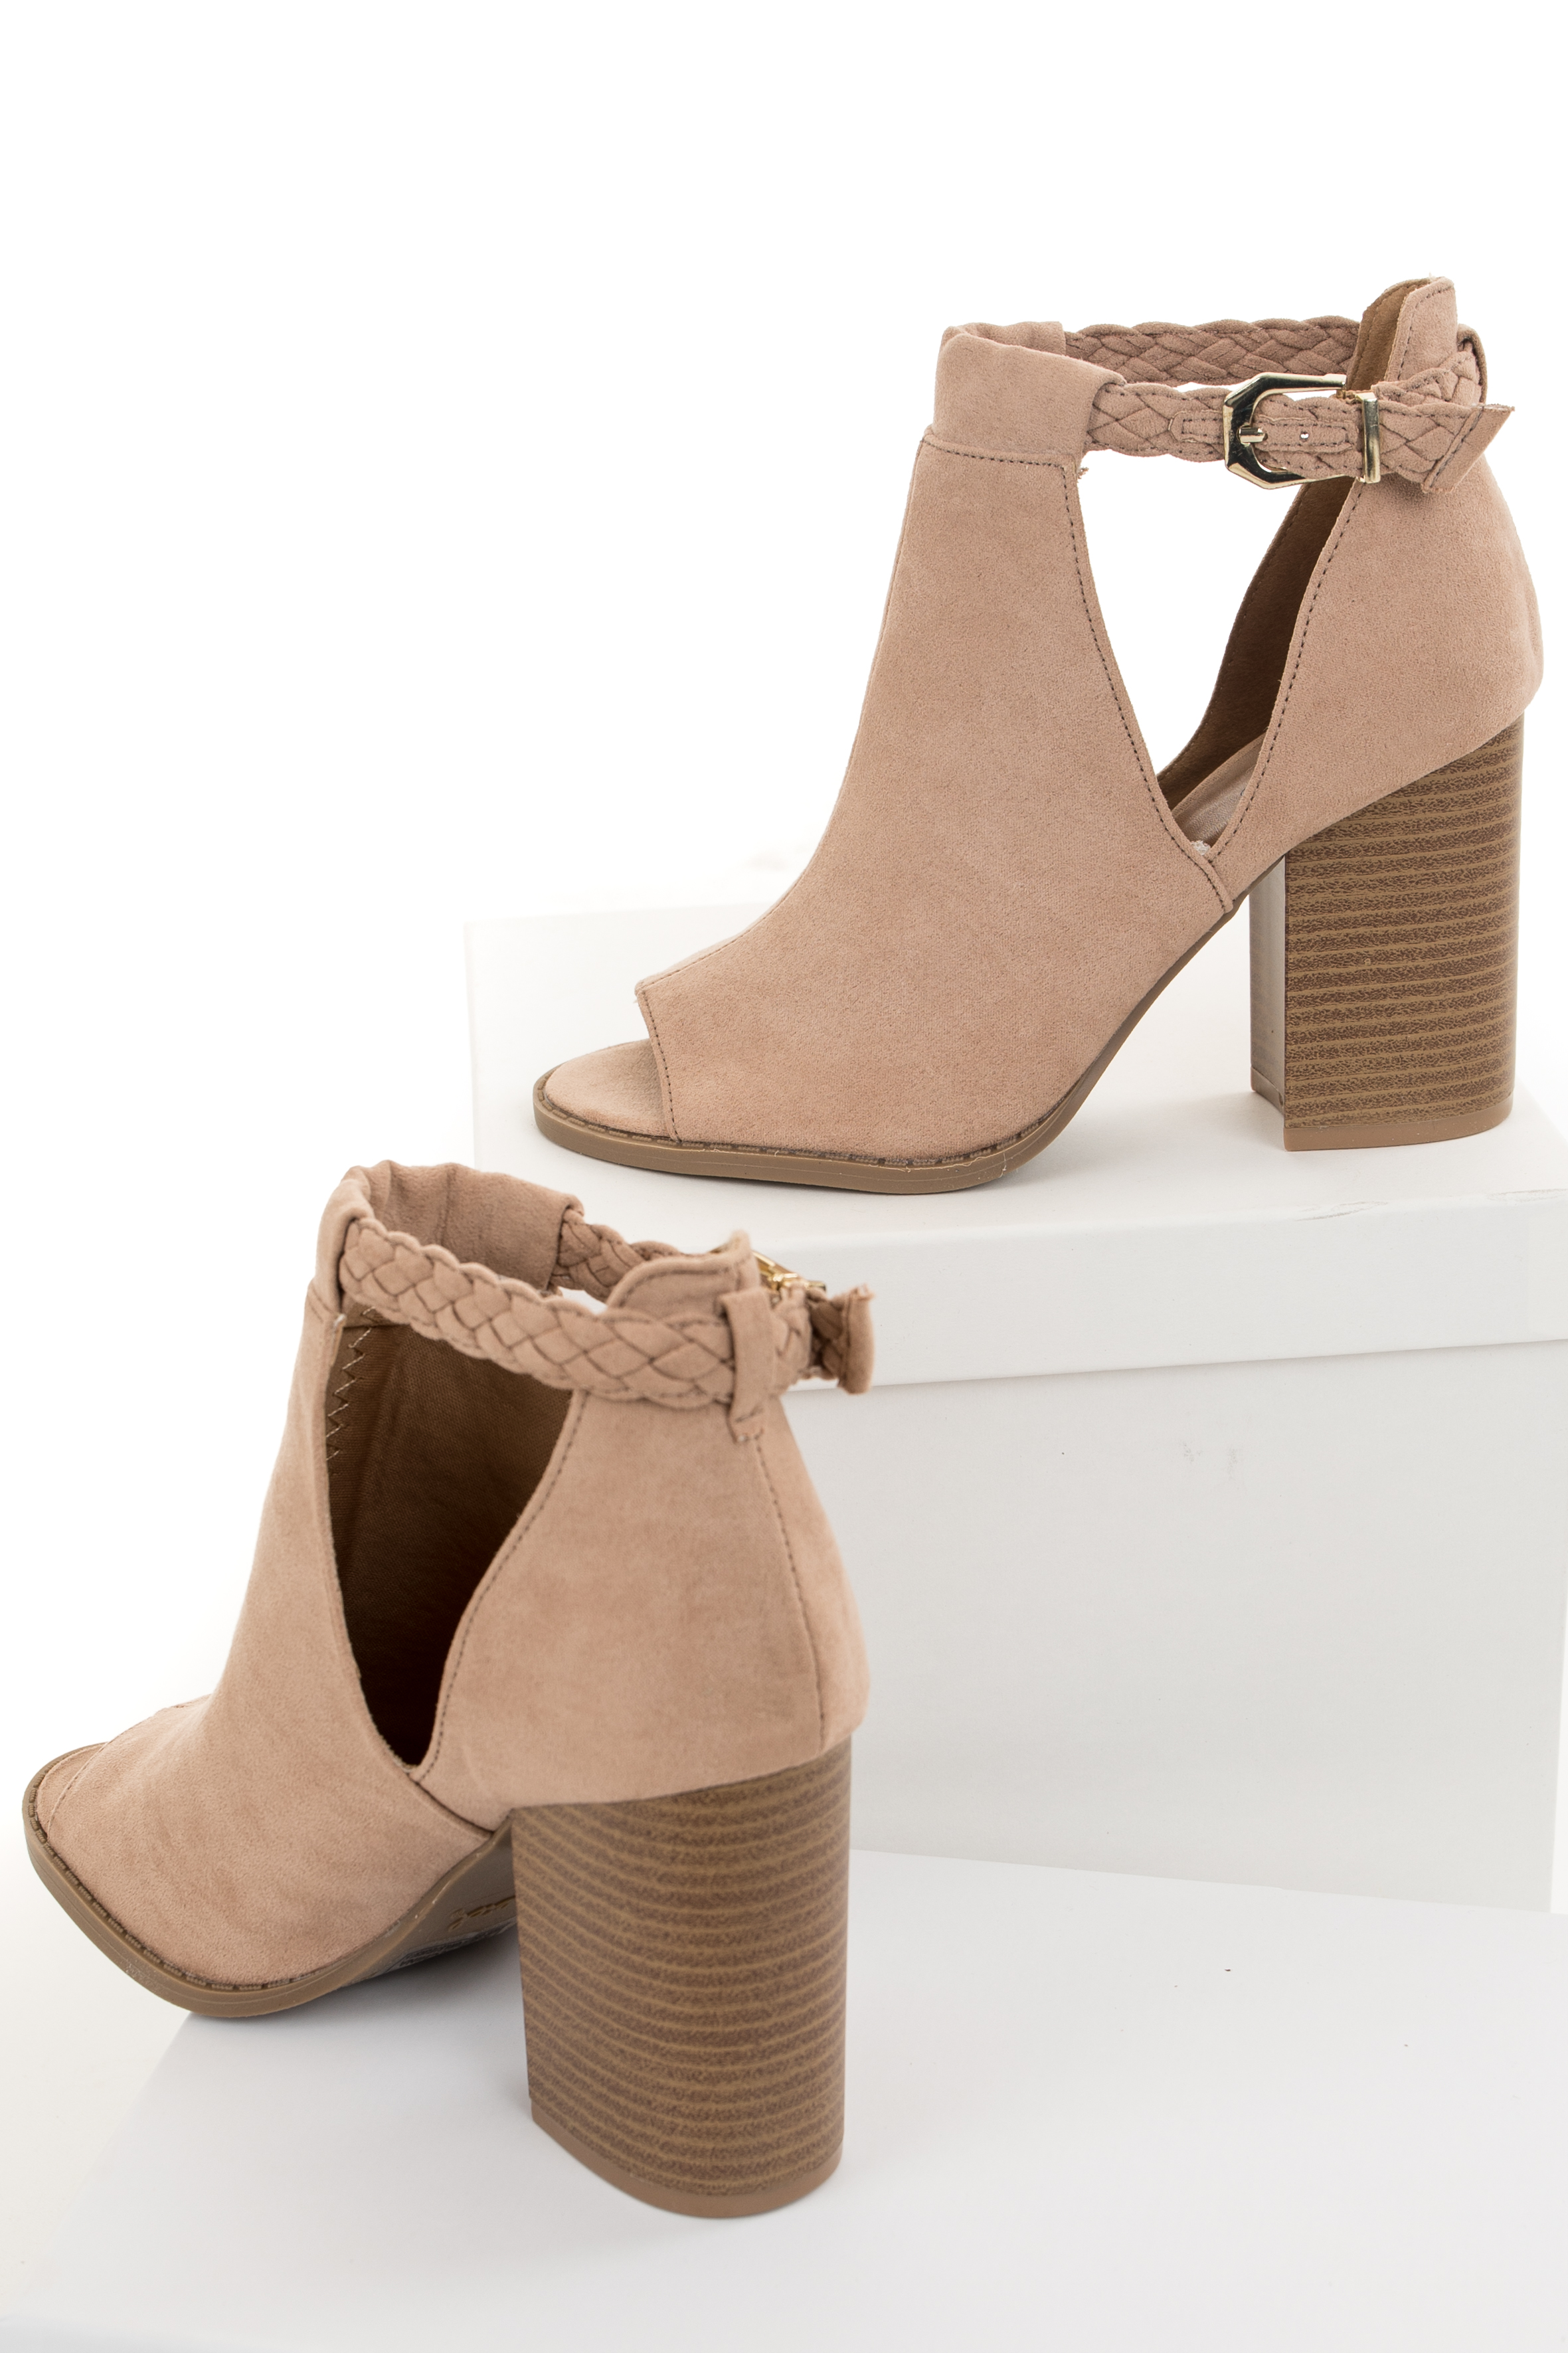 Tan Faux Suede Open Toed Heels with Braided Strap Detail